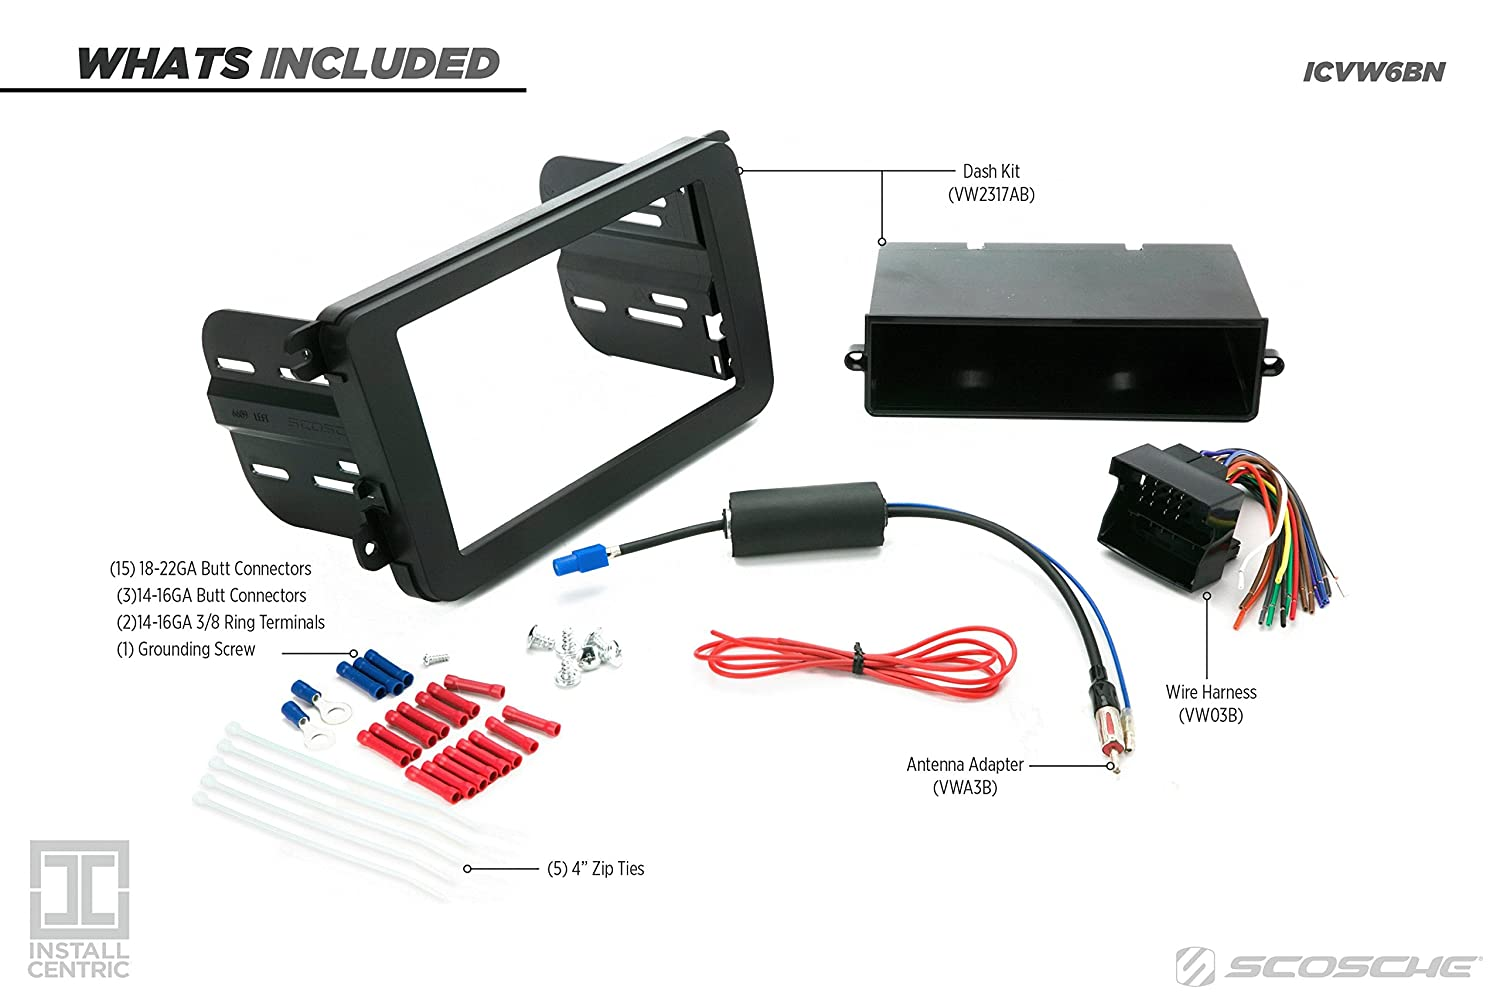 Install Centric Icvw6bn Volkswagen 2006 15 Complete Wiring Harness Installed Installation Kit Car Electronics